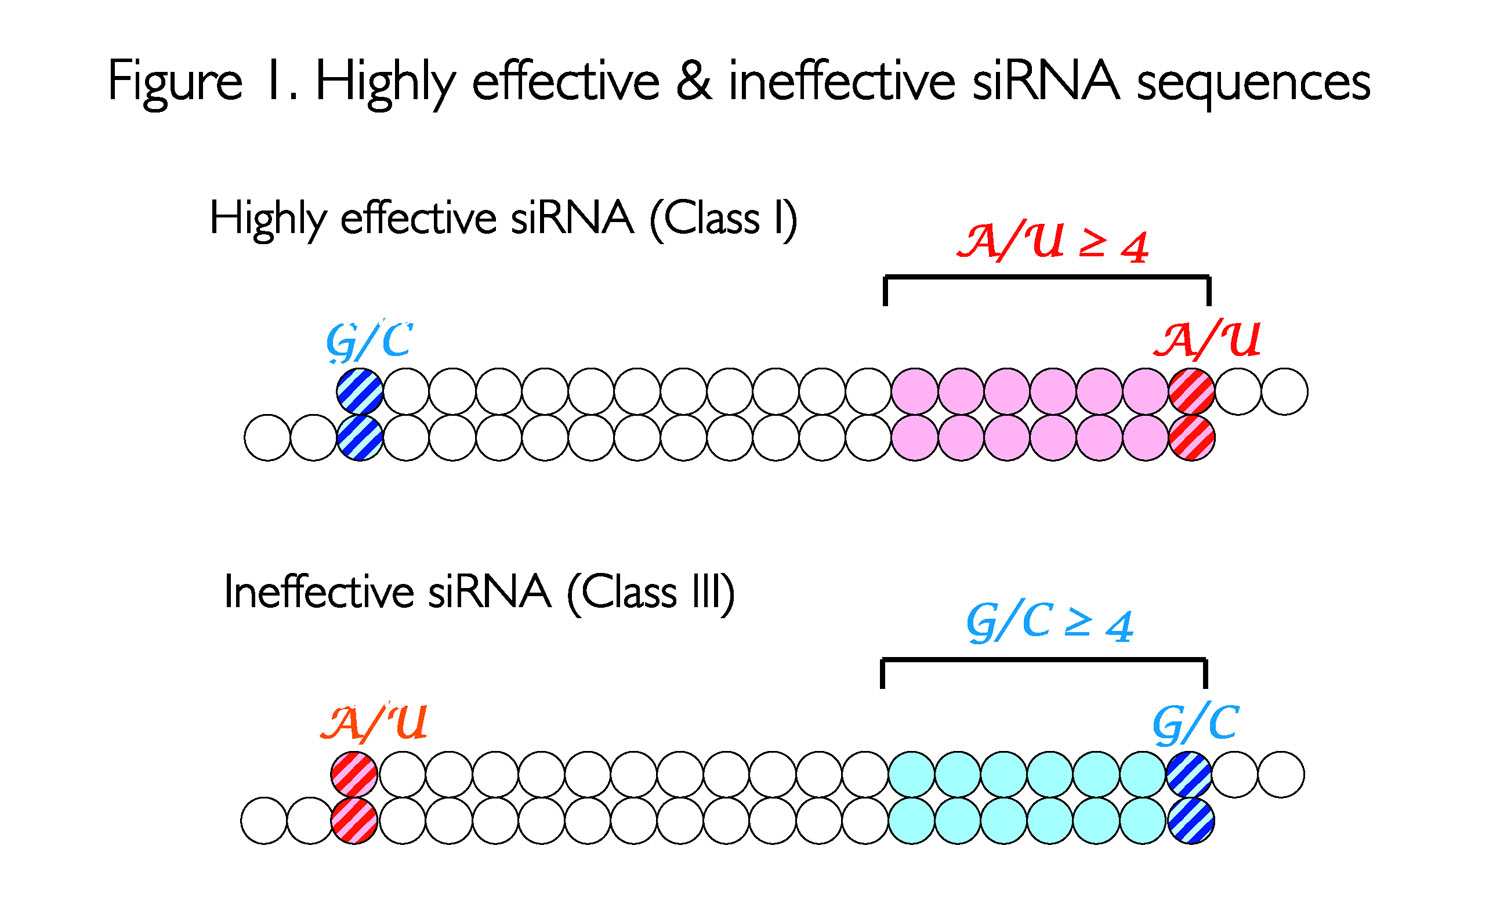 High effectvive & ineffective siRNA sequences